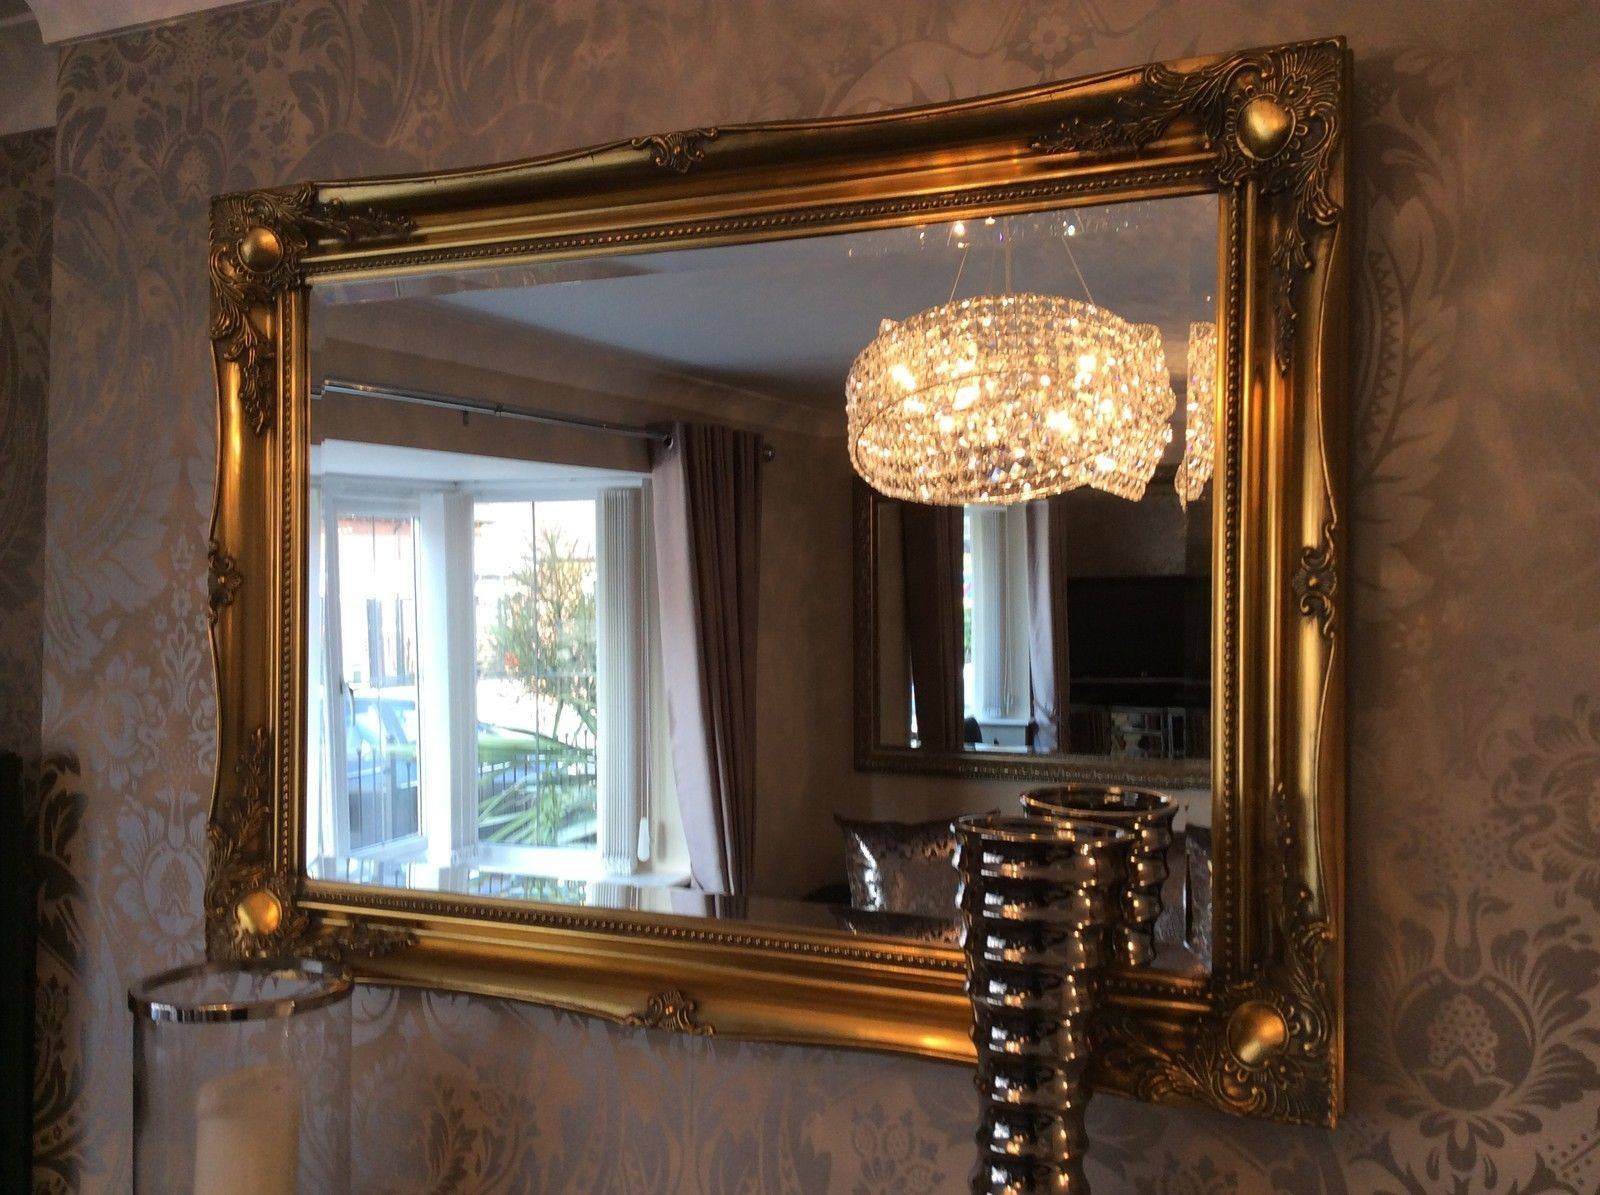 Antique Mirror Wall Cladding - Antique Wall Mirrors For Amazing with Ornate Antique Mirrors (Image 7 of 15)